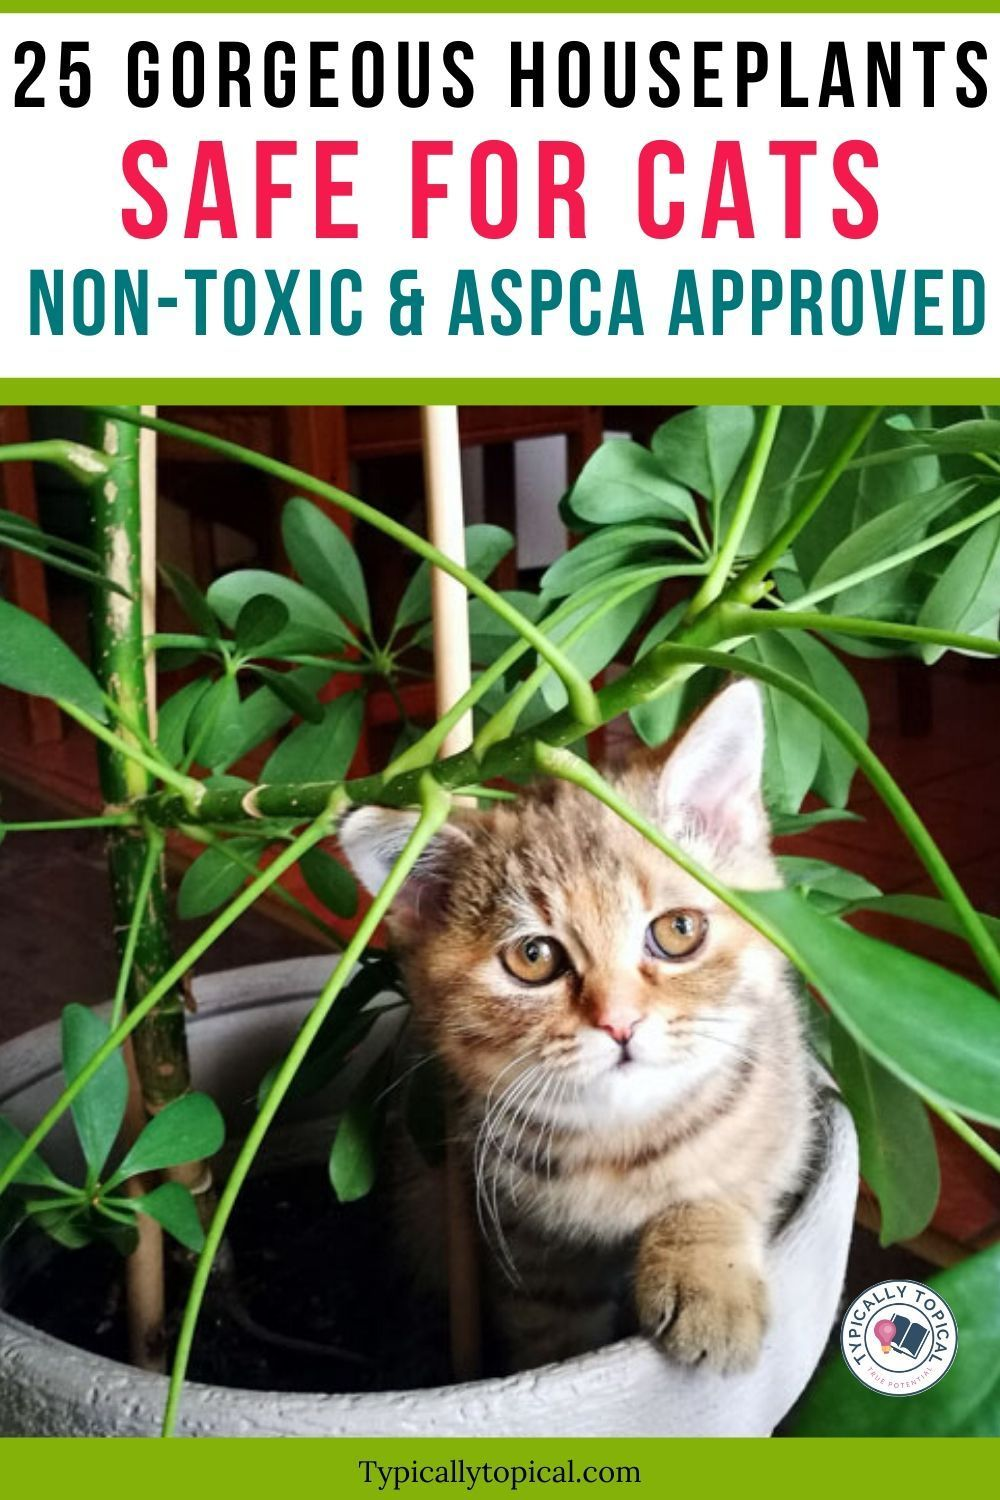 25 Gorgeous Houseplants That Are Safe For Cats And Dogs Aspca Approved Typically Topical In 2020 Houseplants Safe For Cats Pet Safe Cats